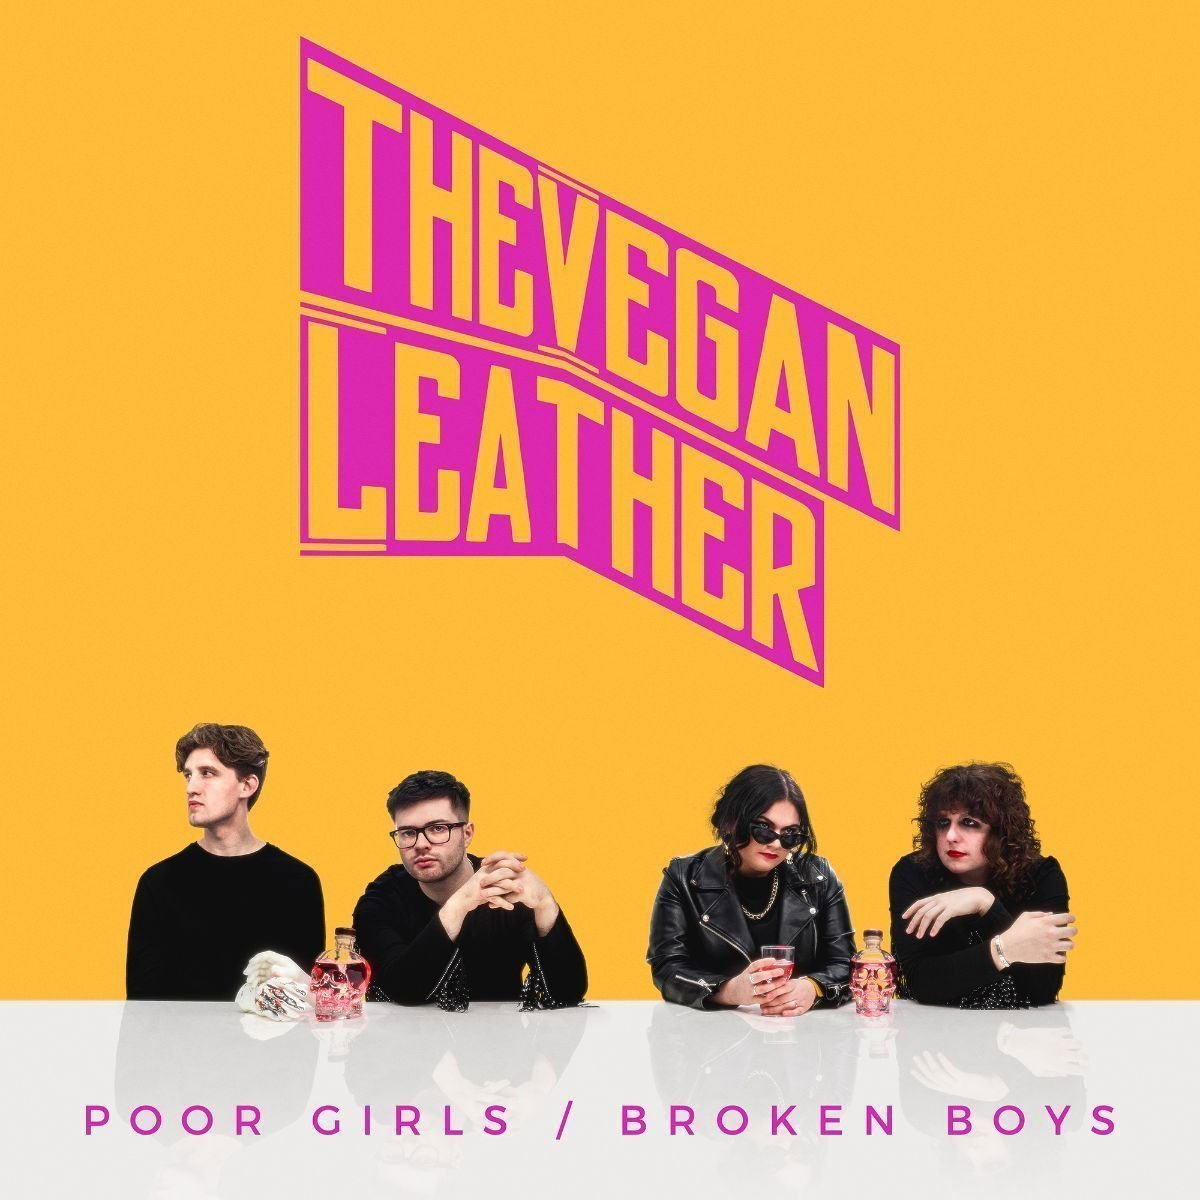 ALBUM REVIEW: The Vegan Leather - Poor Girls / Broken Boys